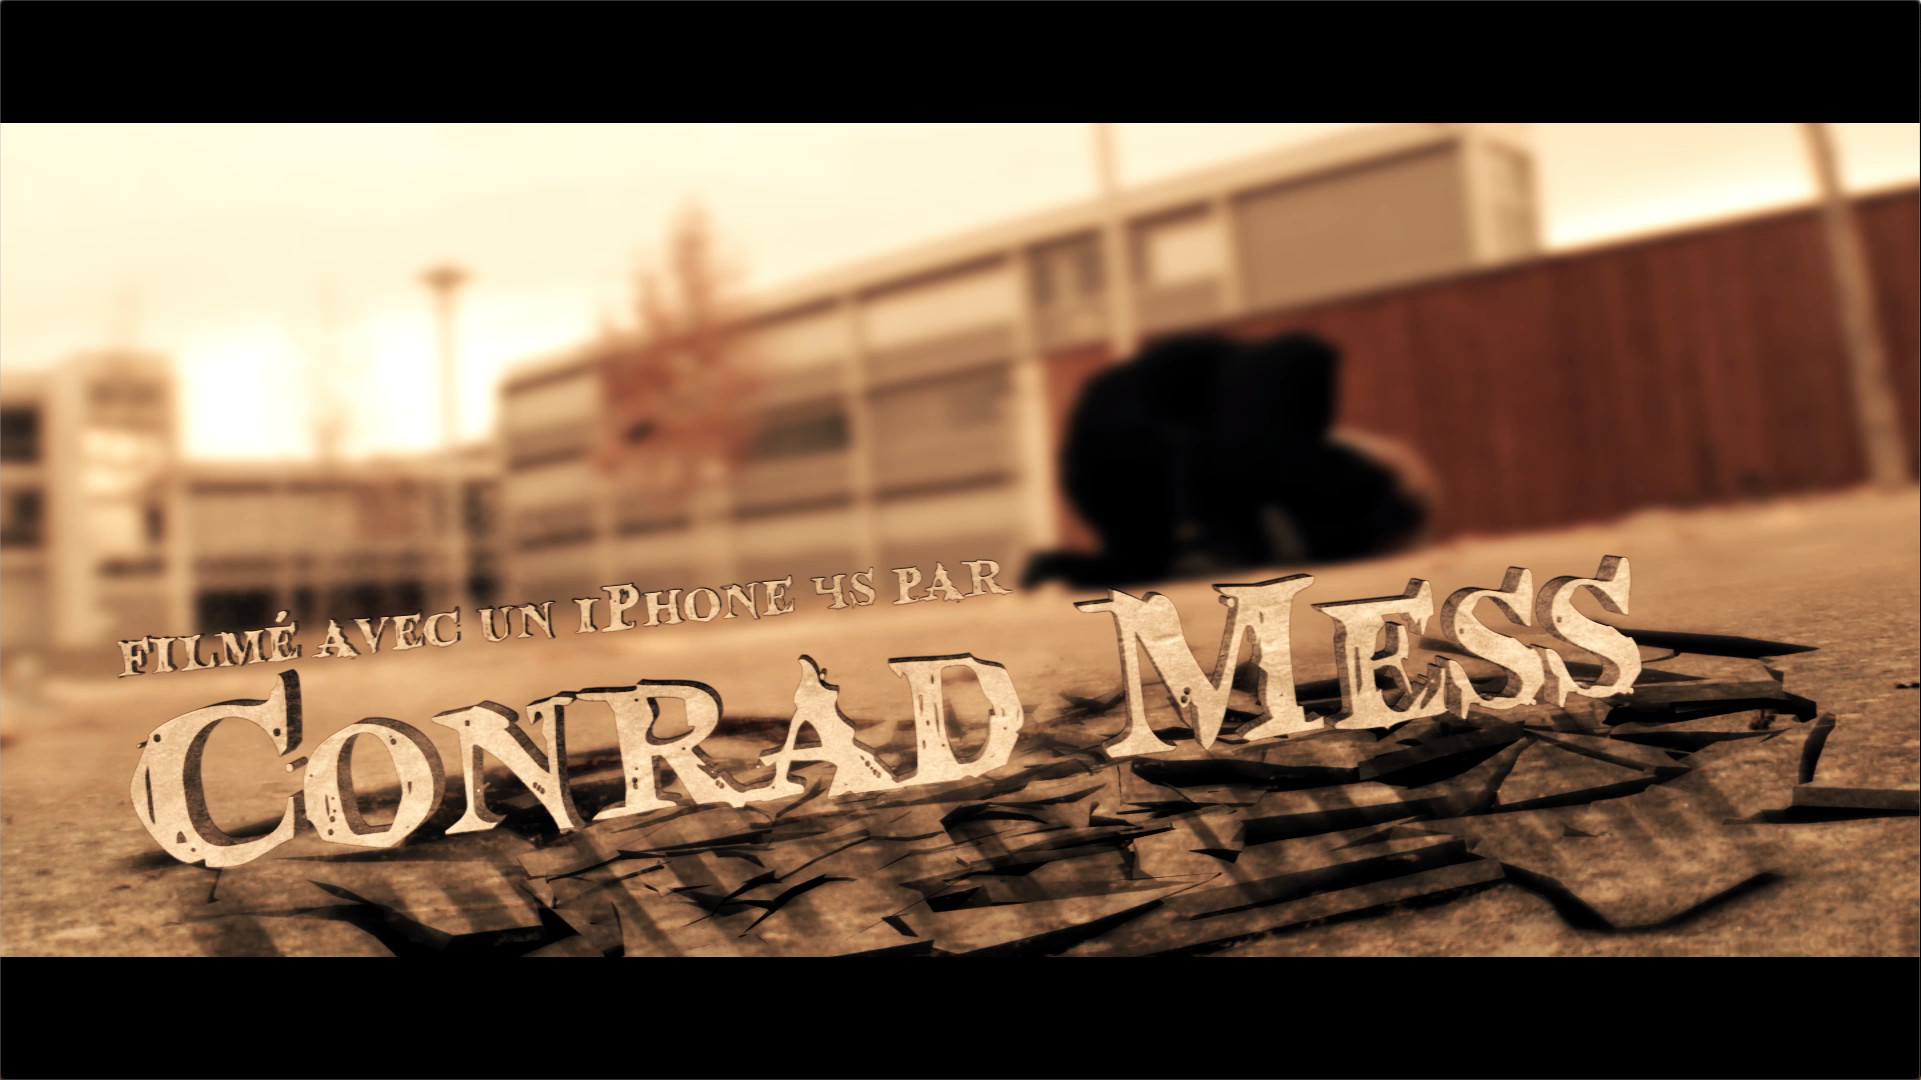 Conrad Mess Vengeance Film